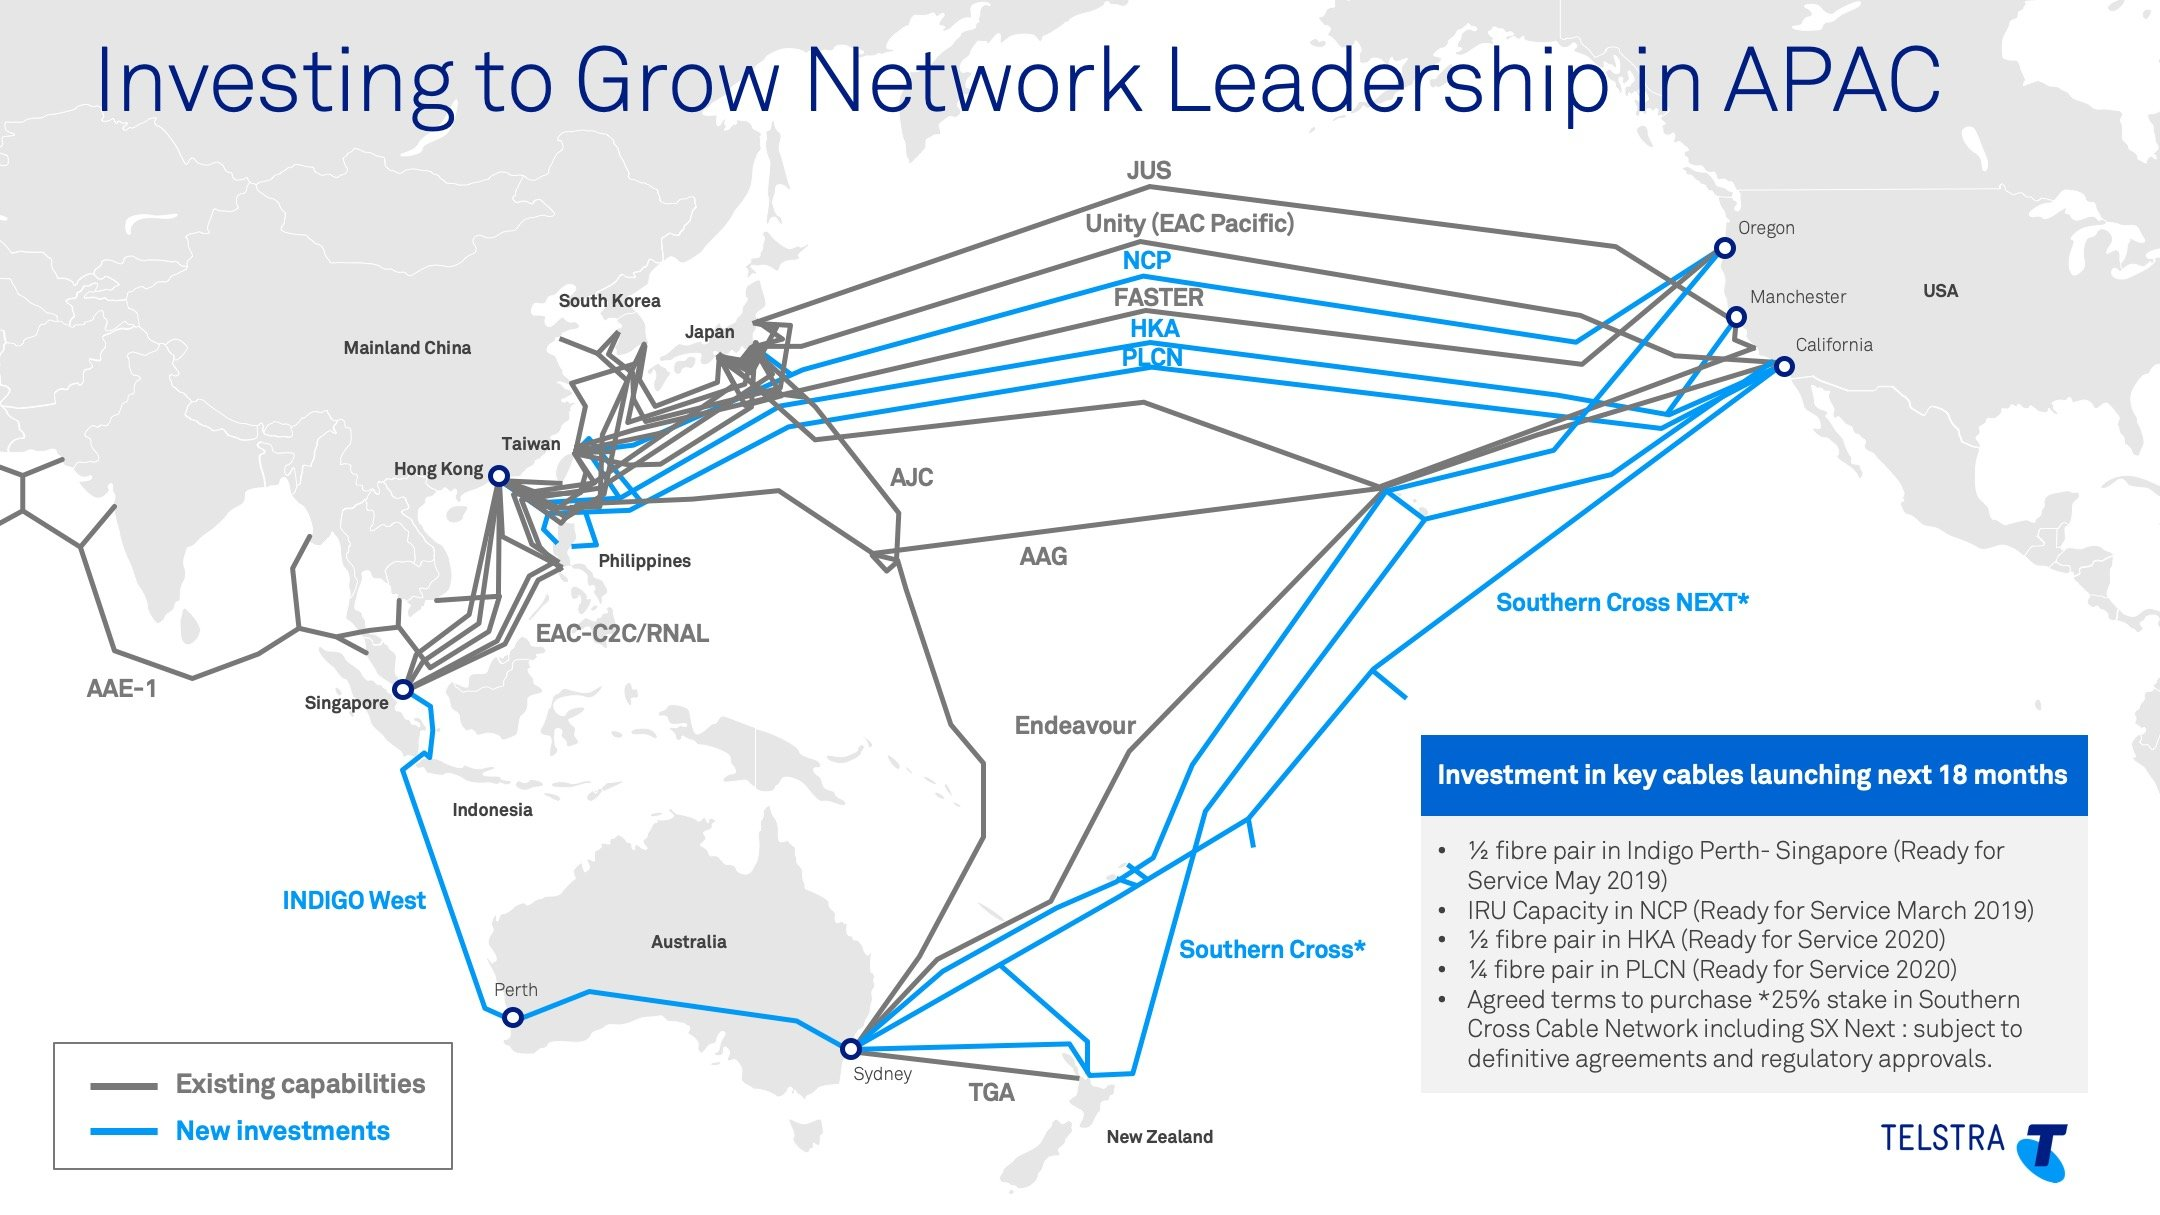 Telstra adds capacity to its submarine cable network in Asia Pacific